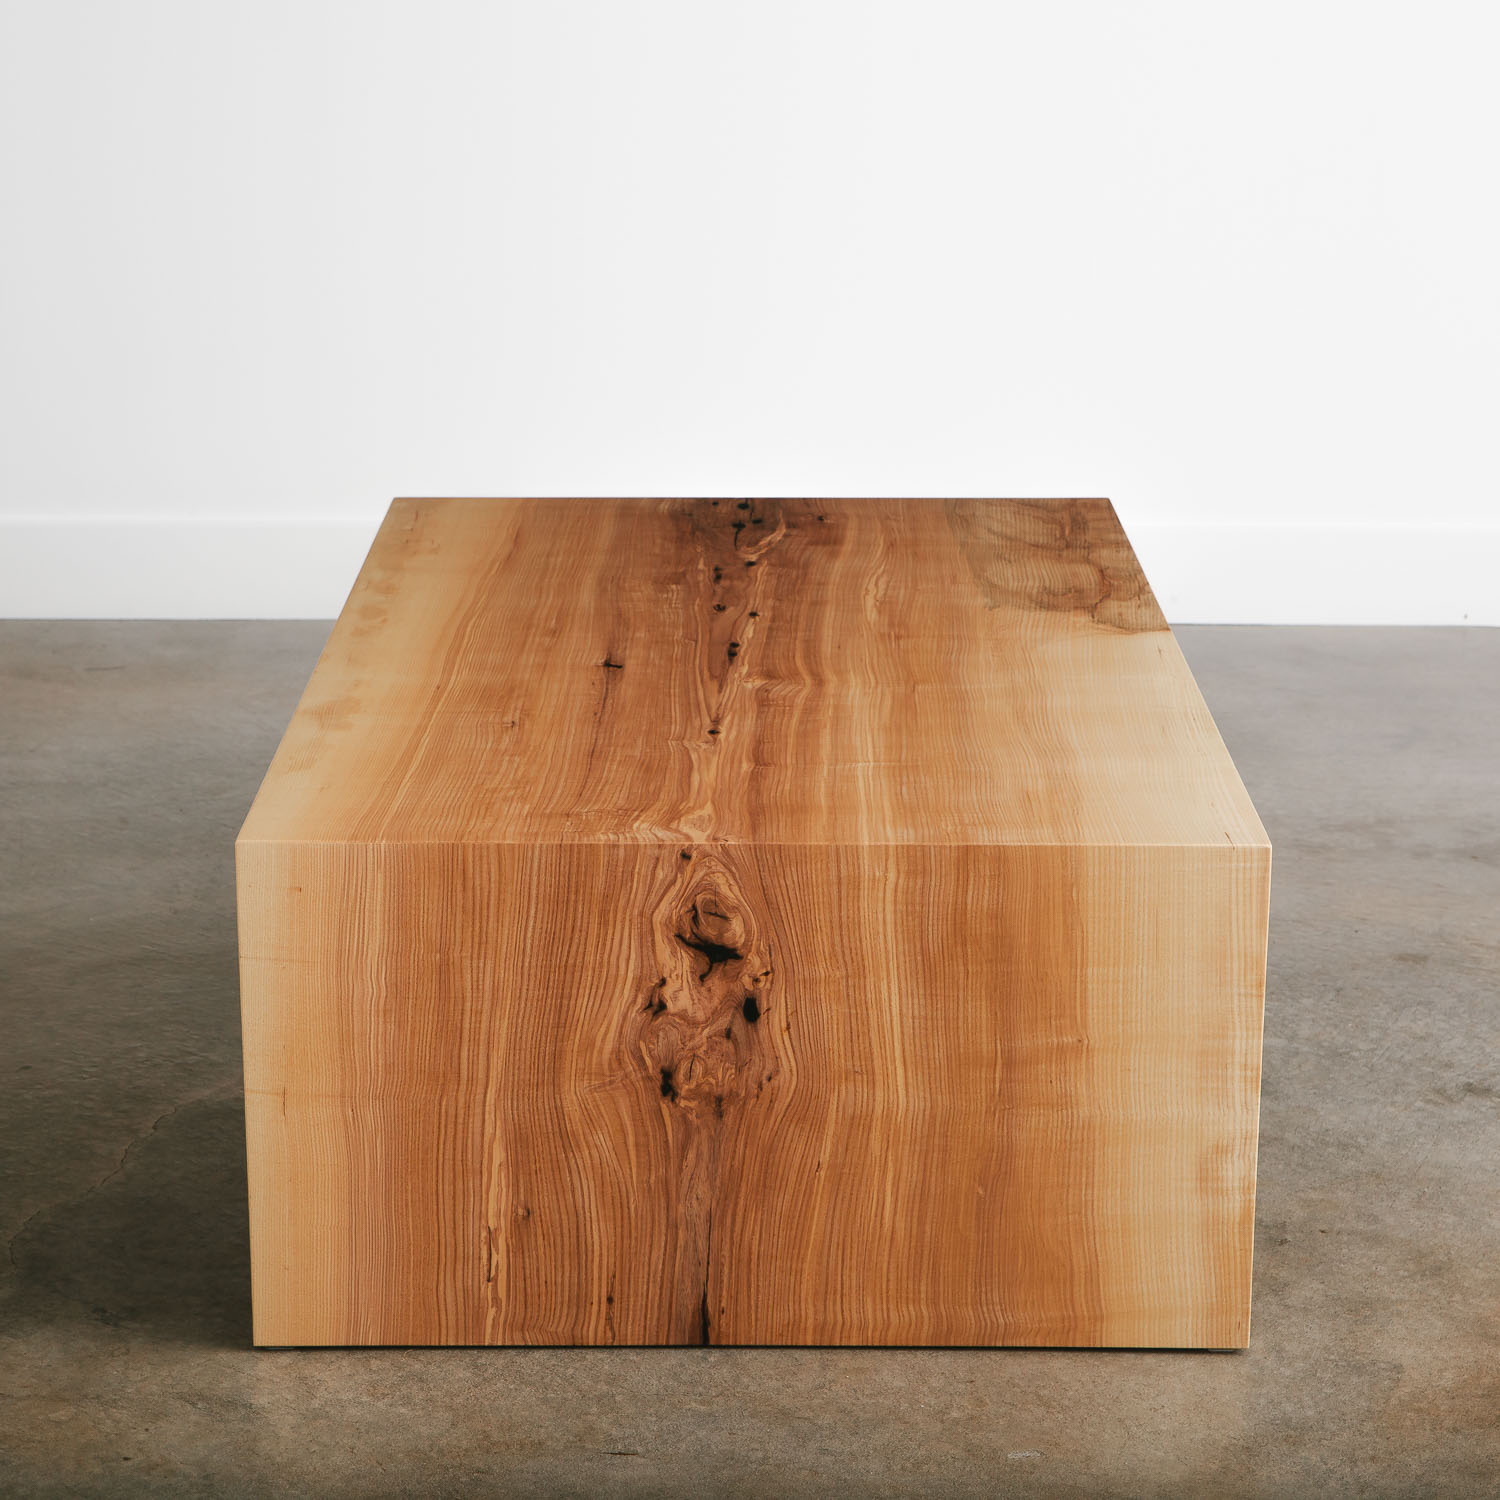 Ash Coffee Table No 131 Elko Hardwoods Modern Live Edge Furniture Dining Coffee Tables Desks Benches